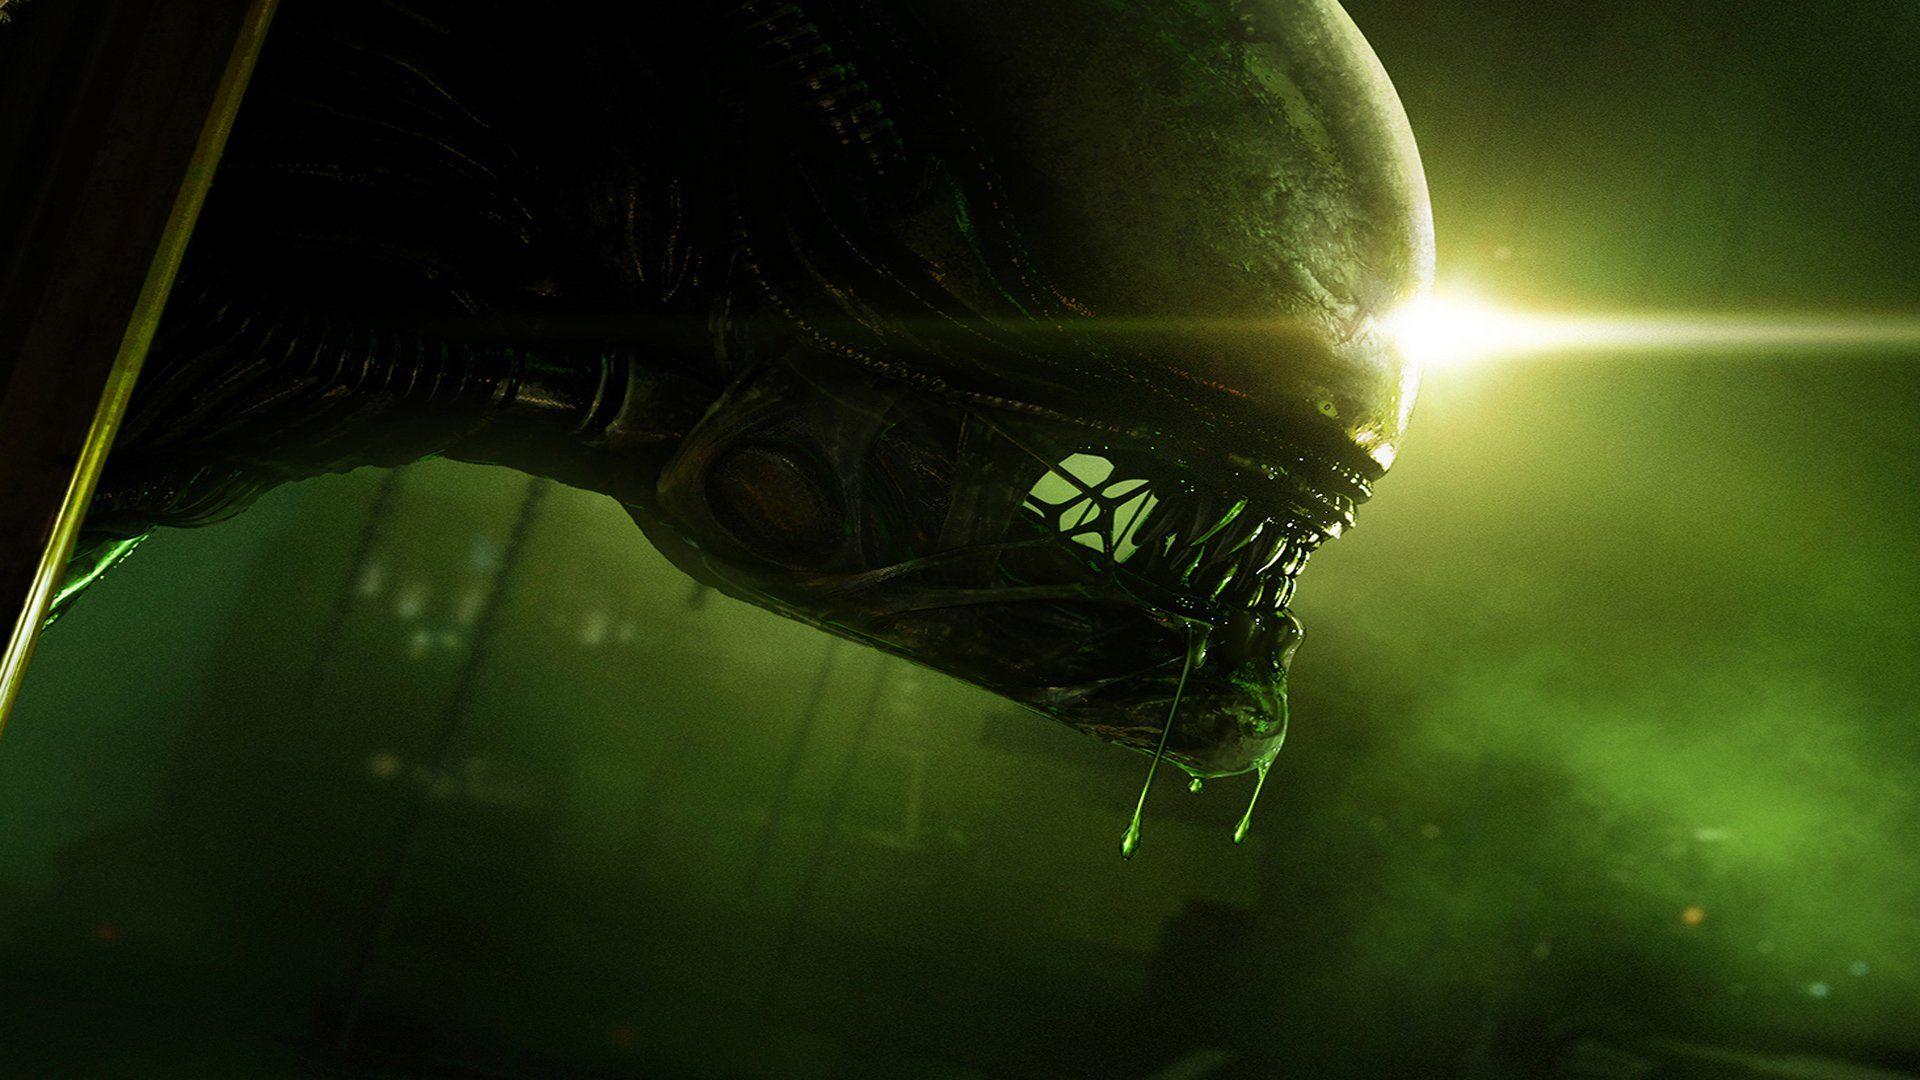 Alien isolation game free download for pc